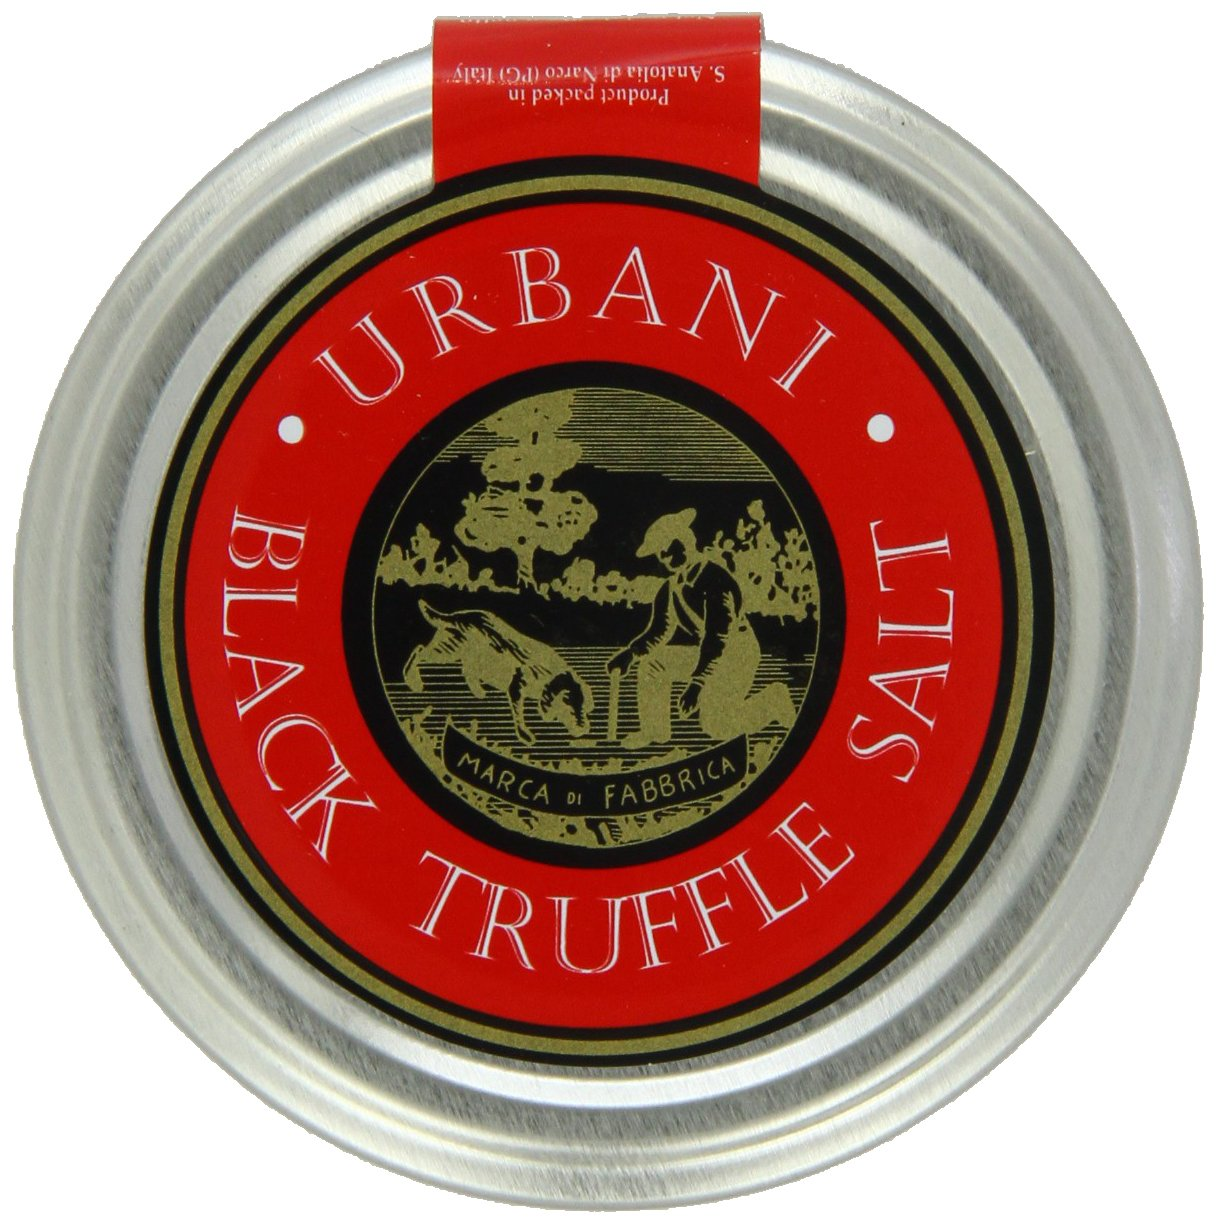 Italian Black Truffle Salt With Real Truffle Flakes - 3.5 Ounce - By Urbani Truffles